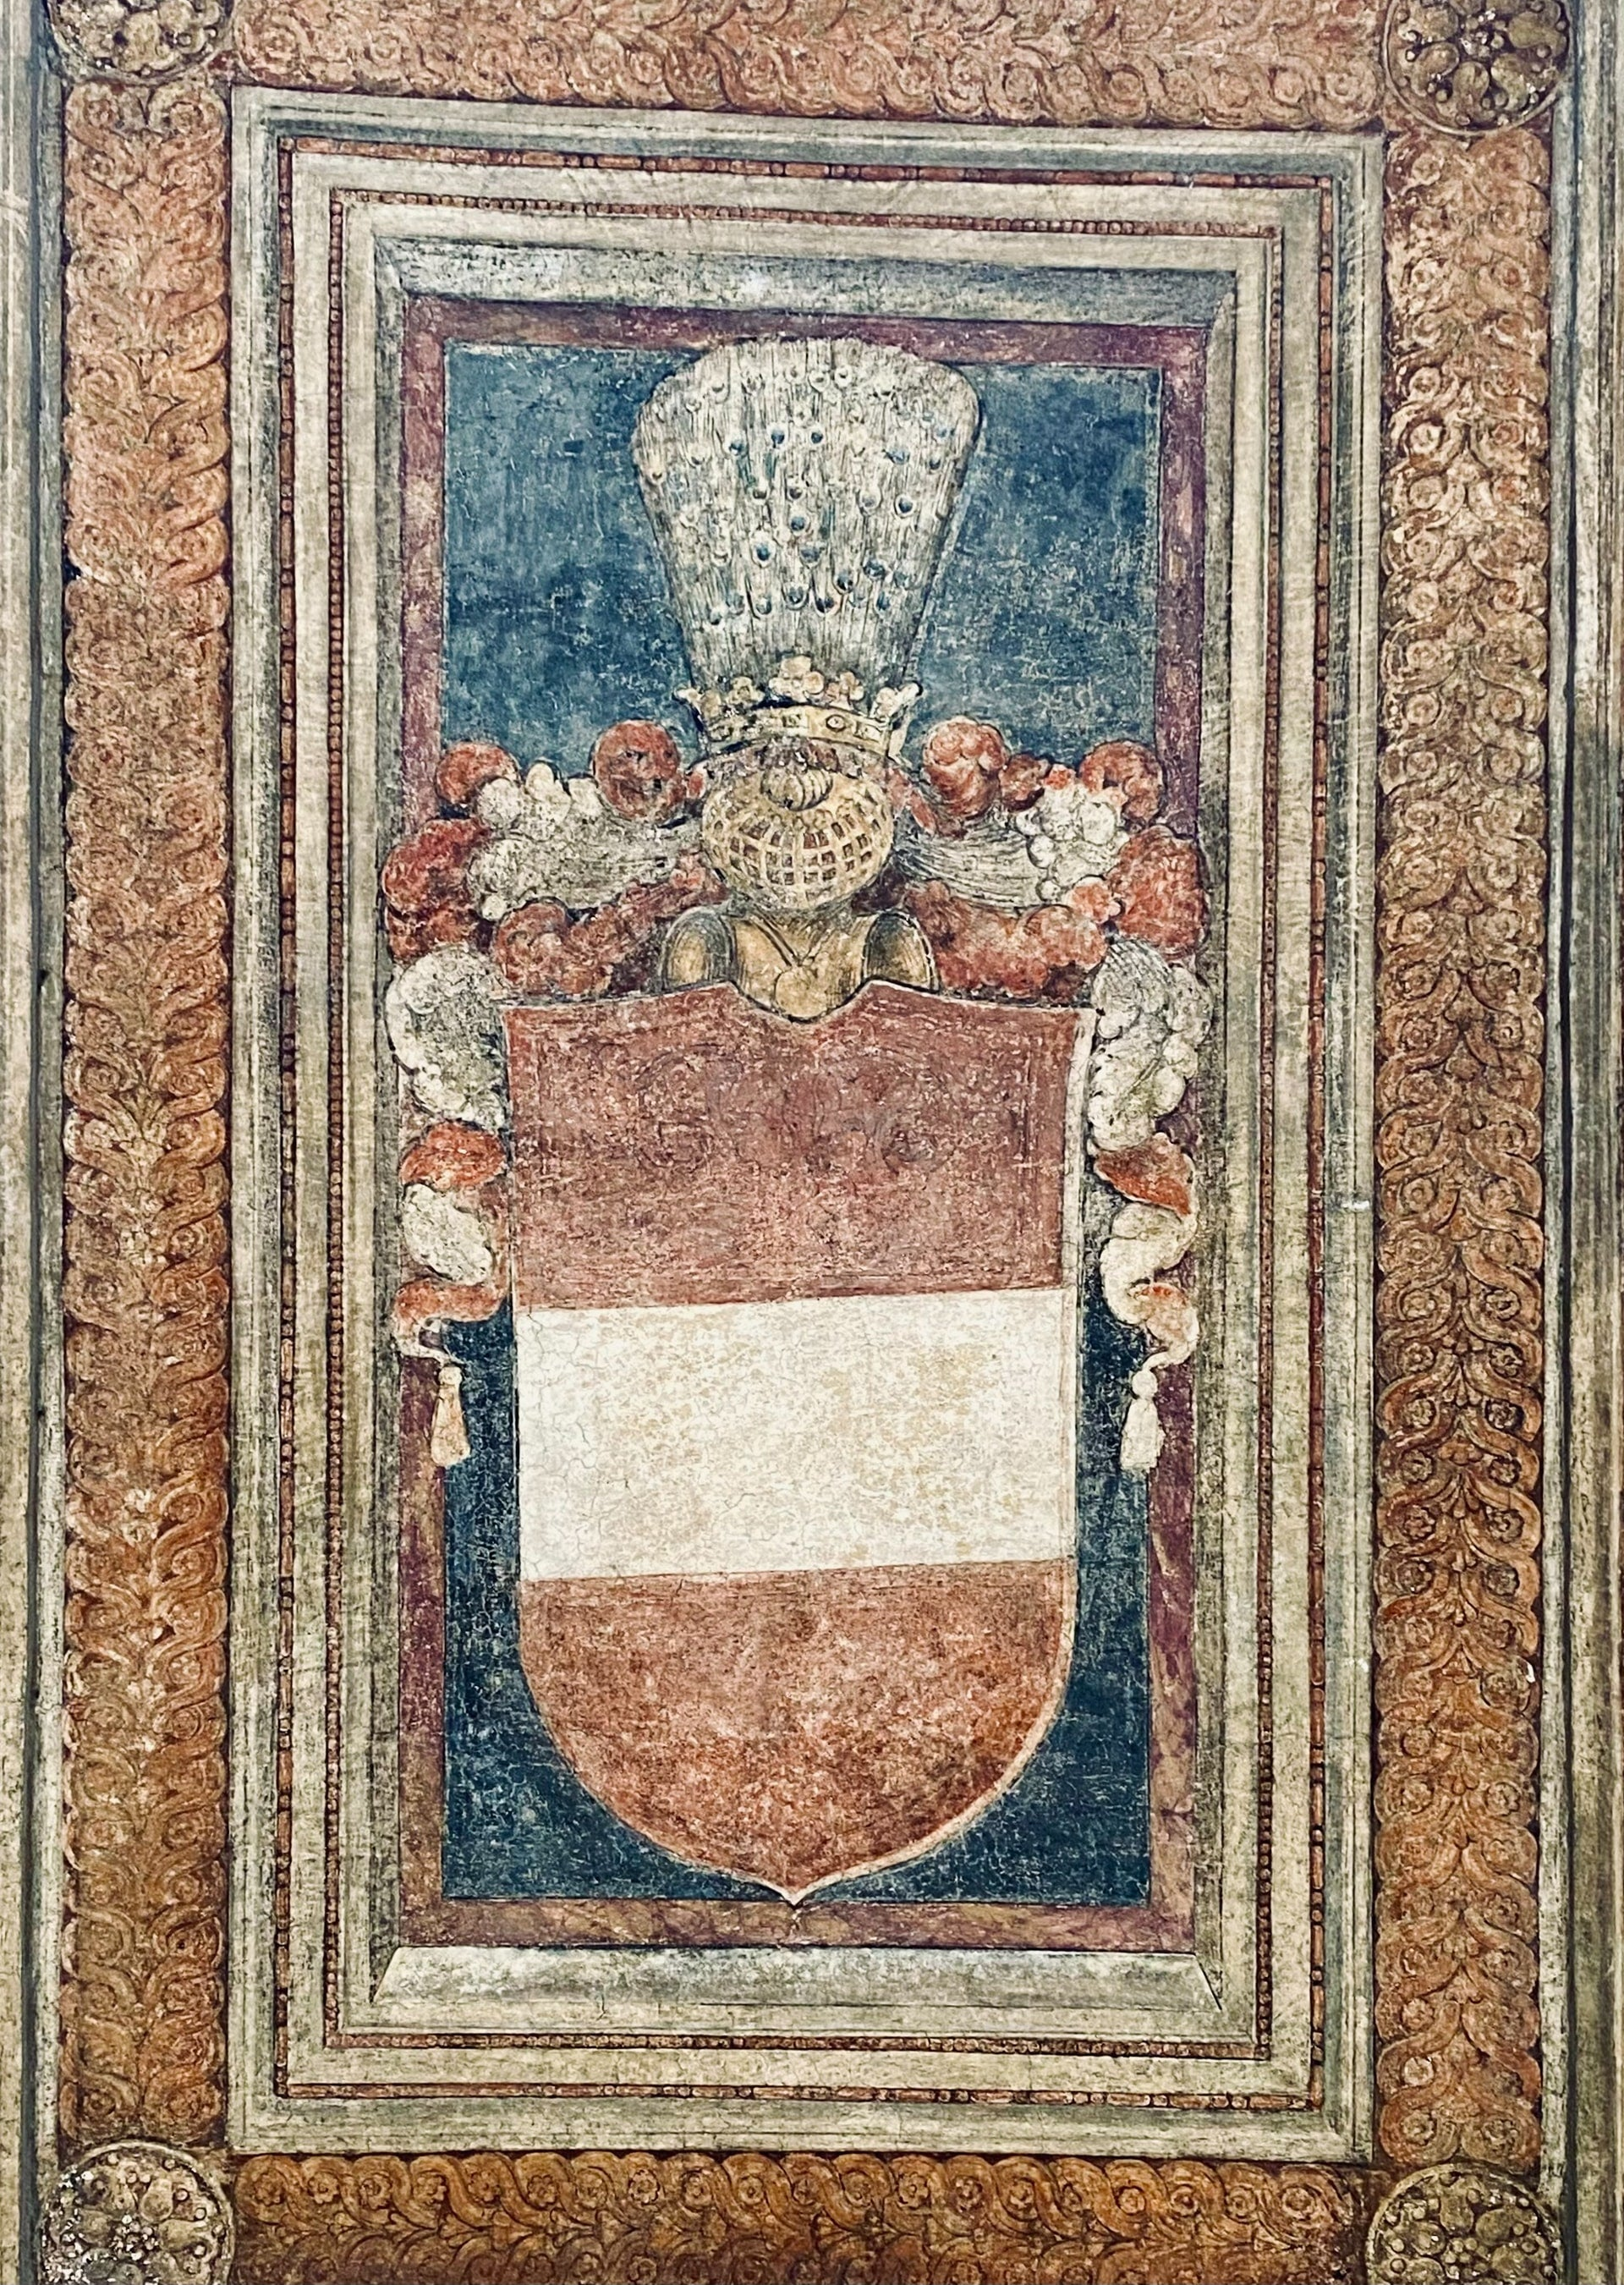 A picture showing show the coat of arms of the Habsburg family.